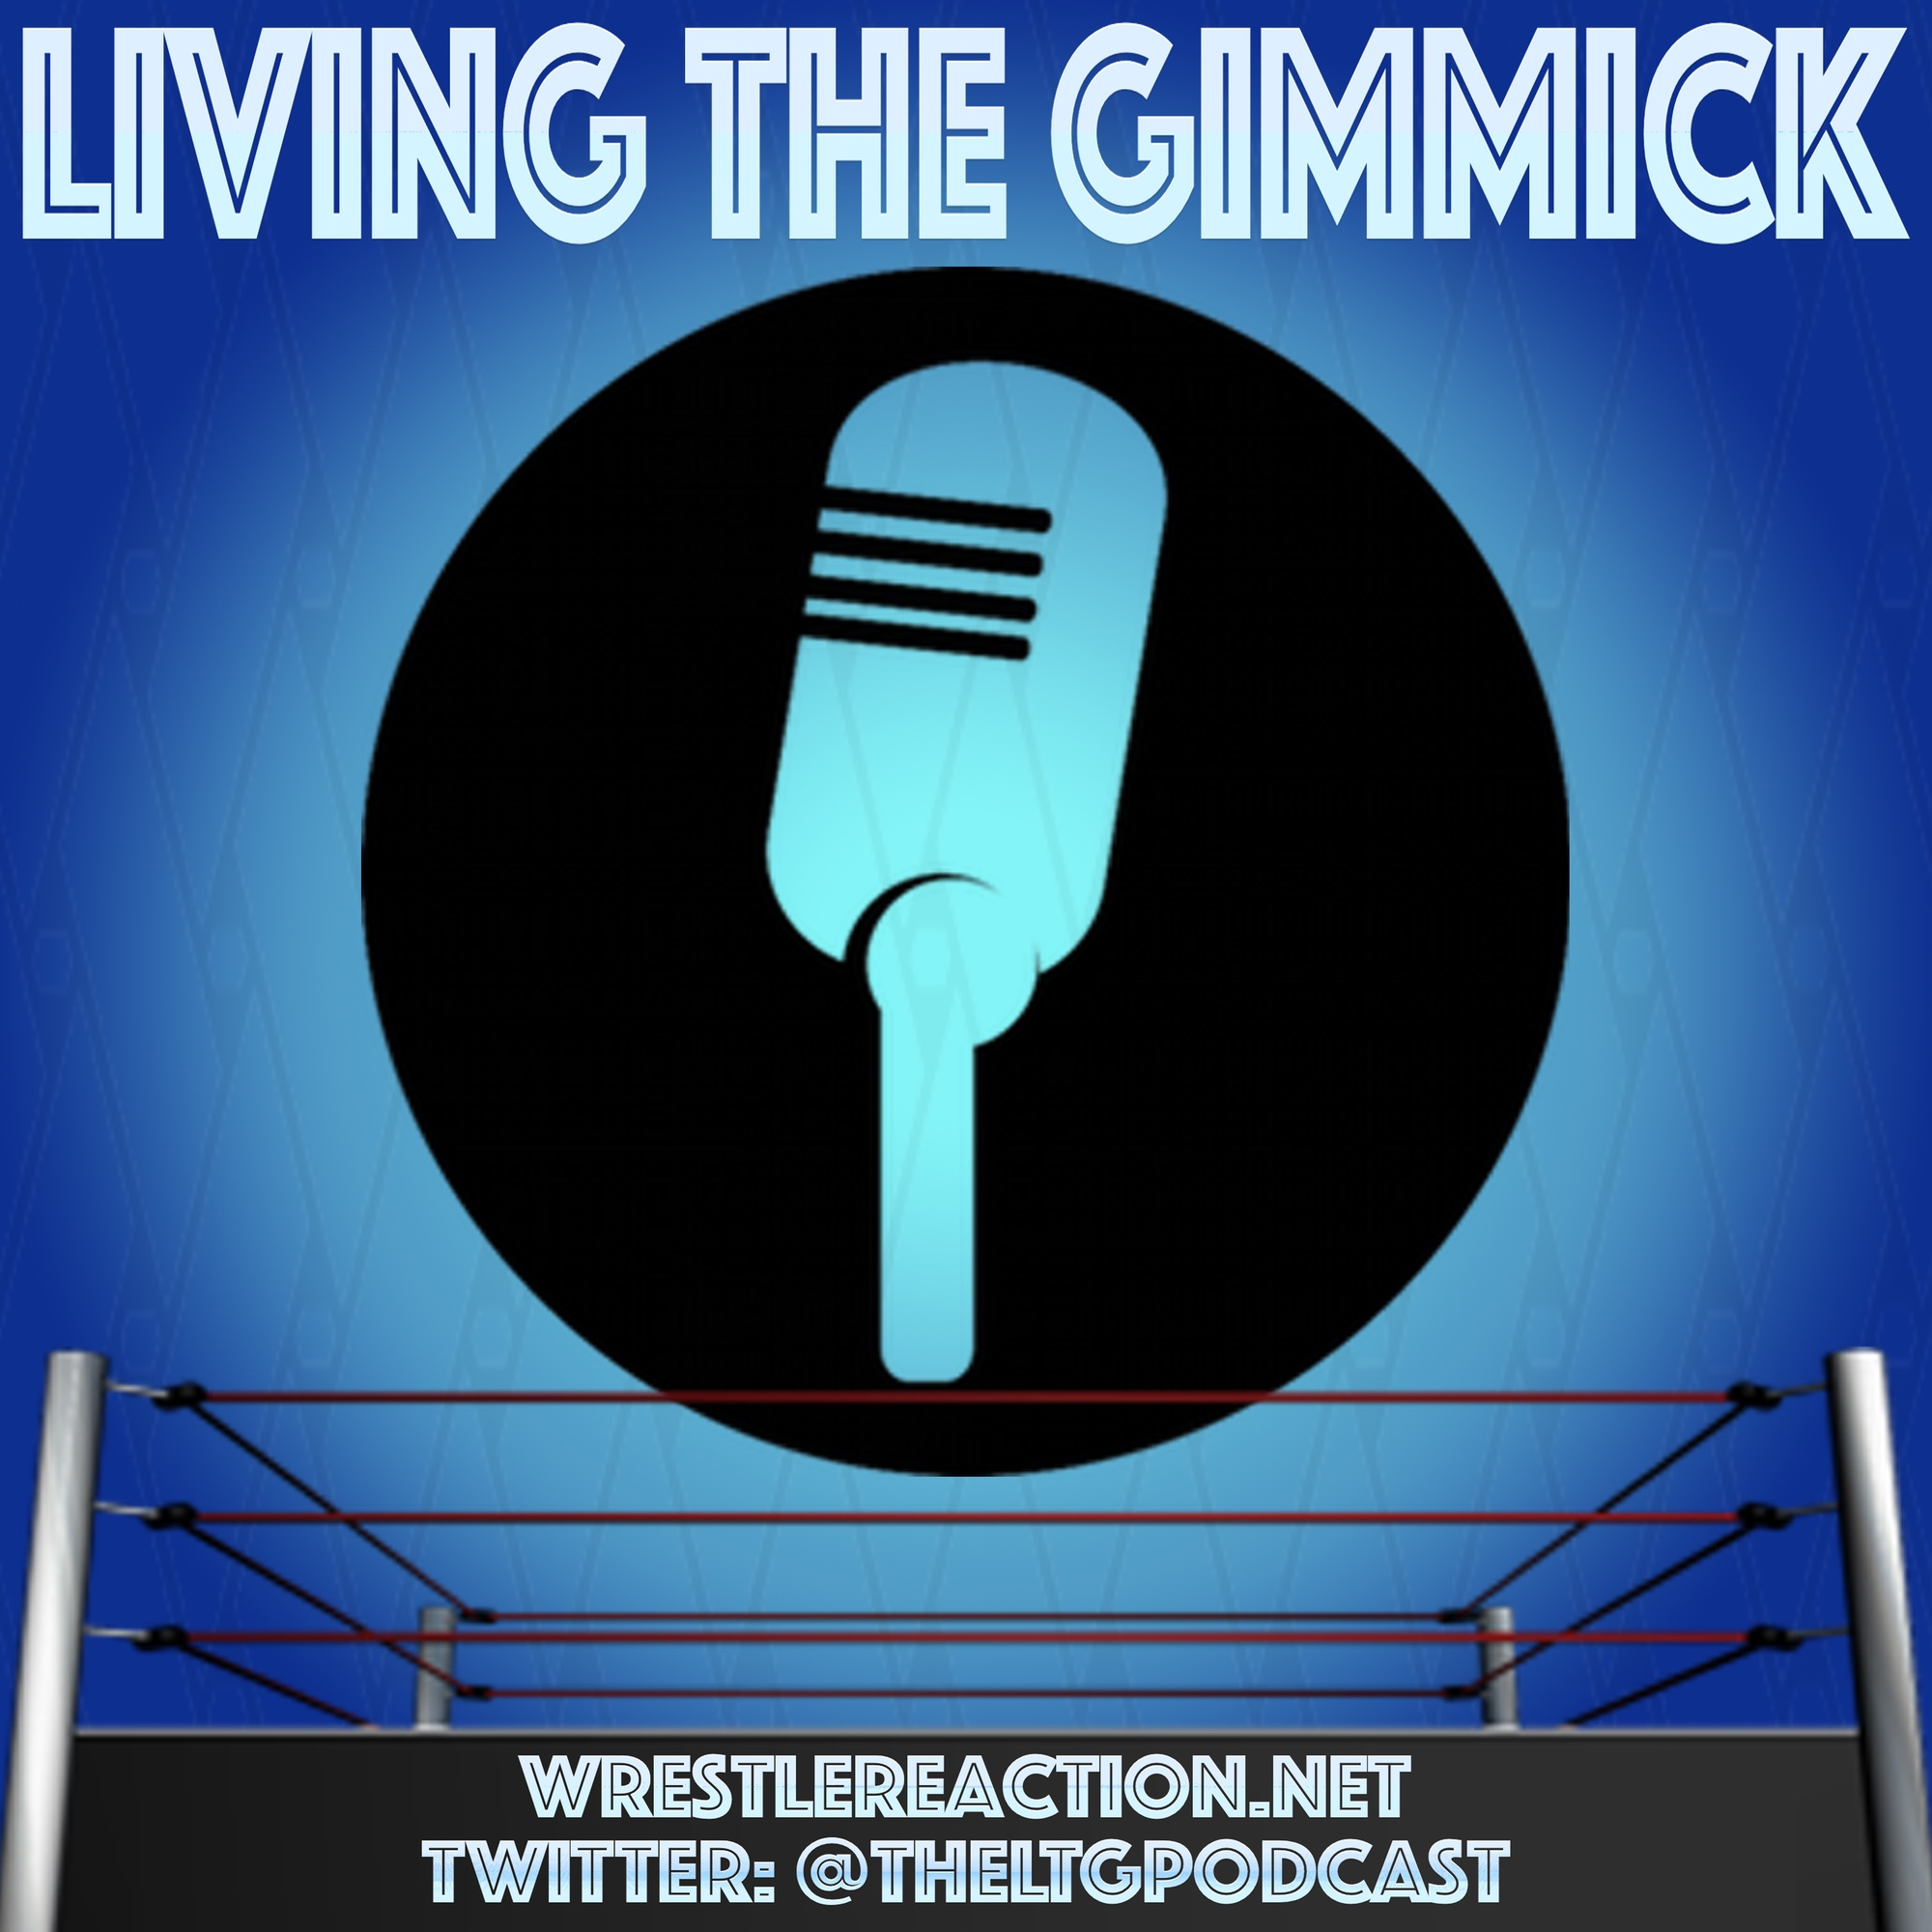 Living The Gimmick: Episode 189 (Jon and Doug Give Their Predictions for WWE Money In The Bank, Discuss TNT's Return to Wrestling with AEW, and More)